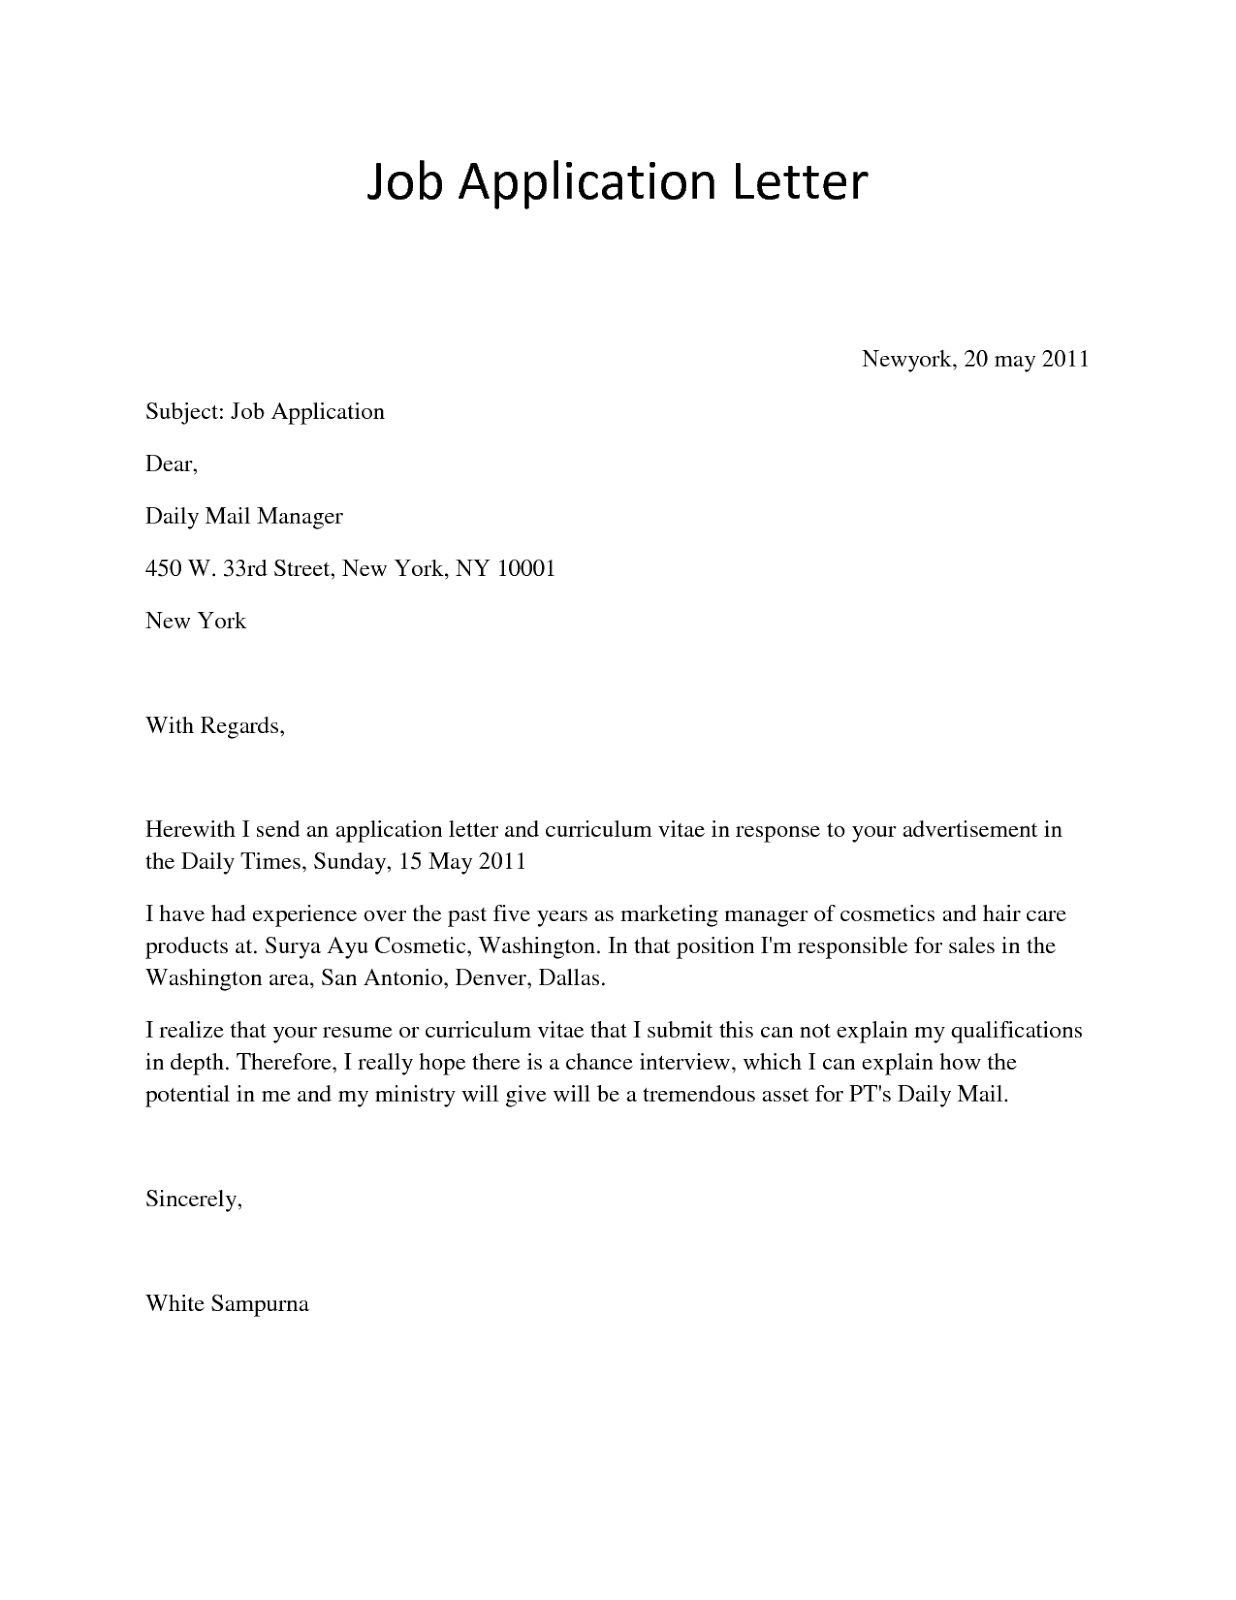 job application letter sample 9 in 2020 Simple job